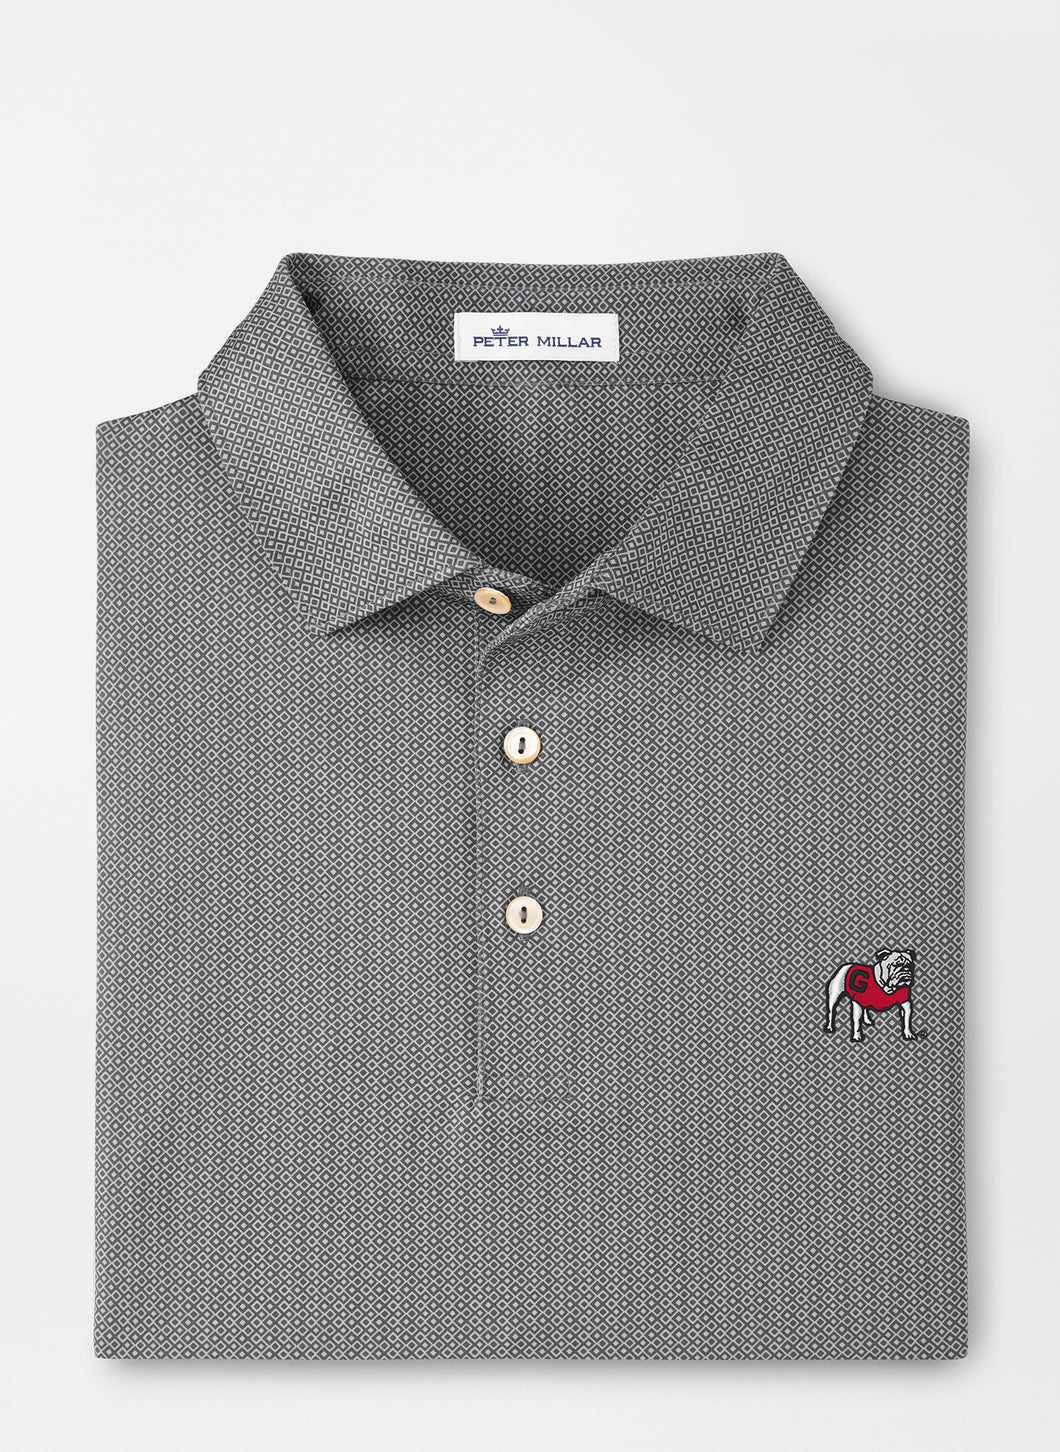 Peter Millar Georgia Standing Bulldog Jamm Performance Polo in Iron